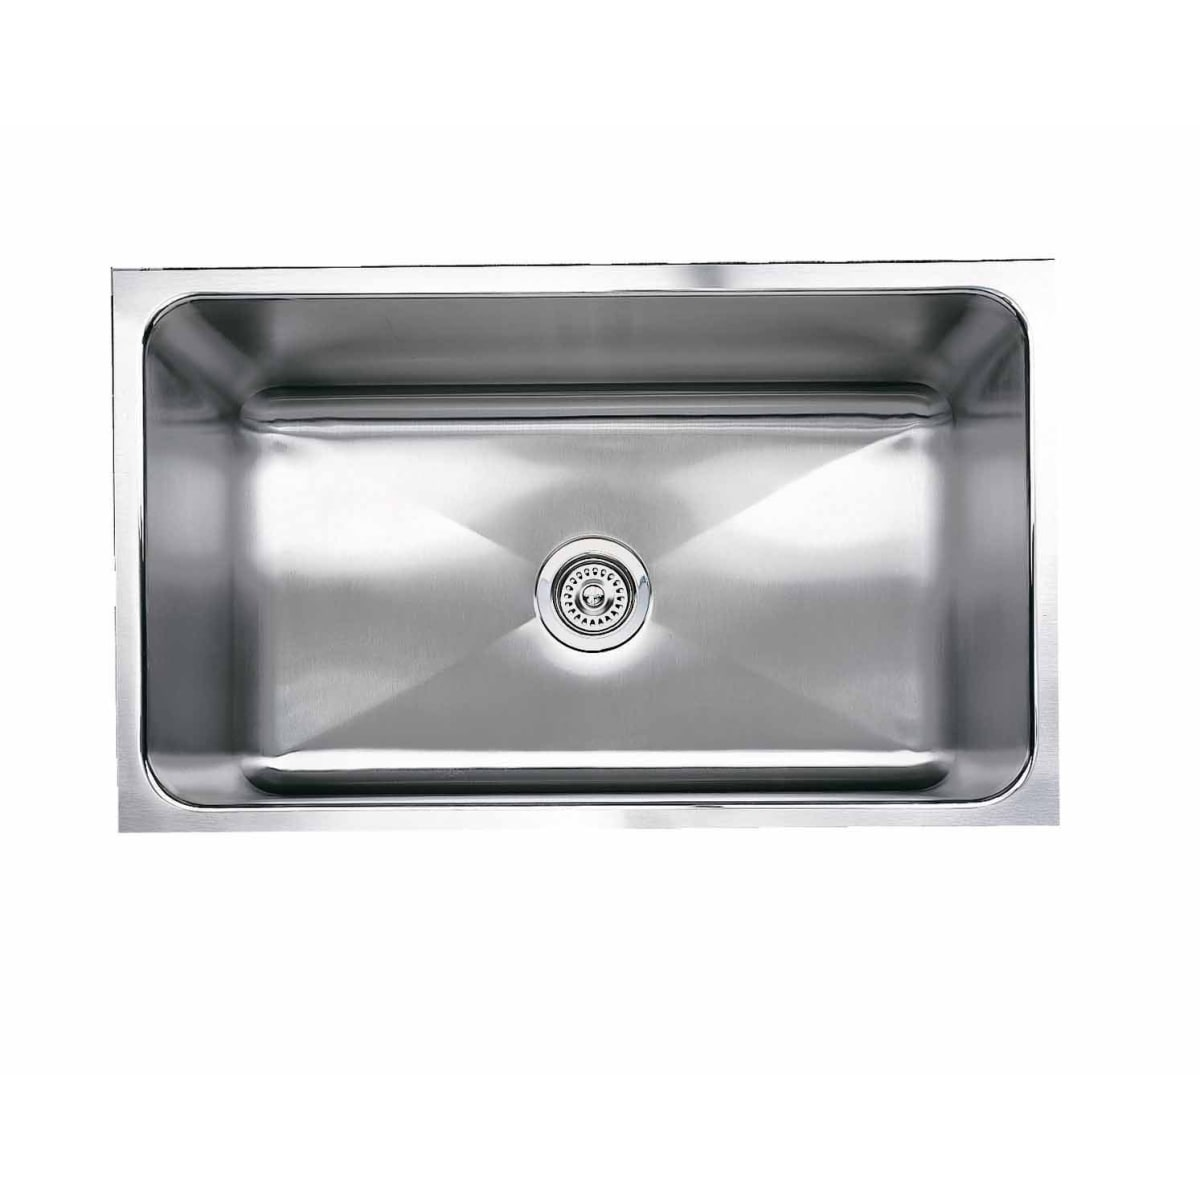 "Blanco Magnum 31-1/4"" Undermount Single Basin Stainless Steel Kitchen Sink"